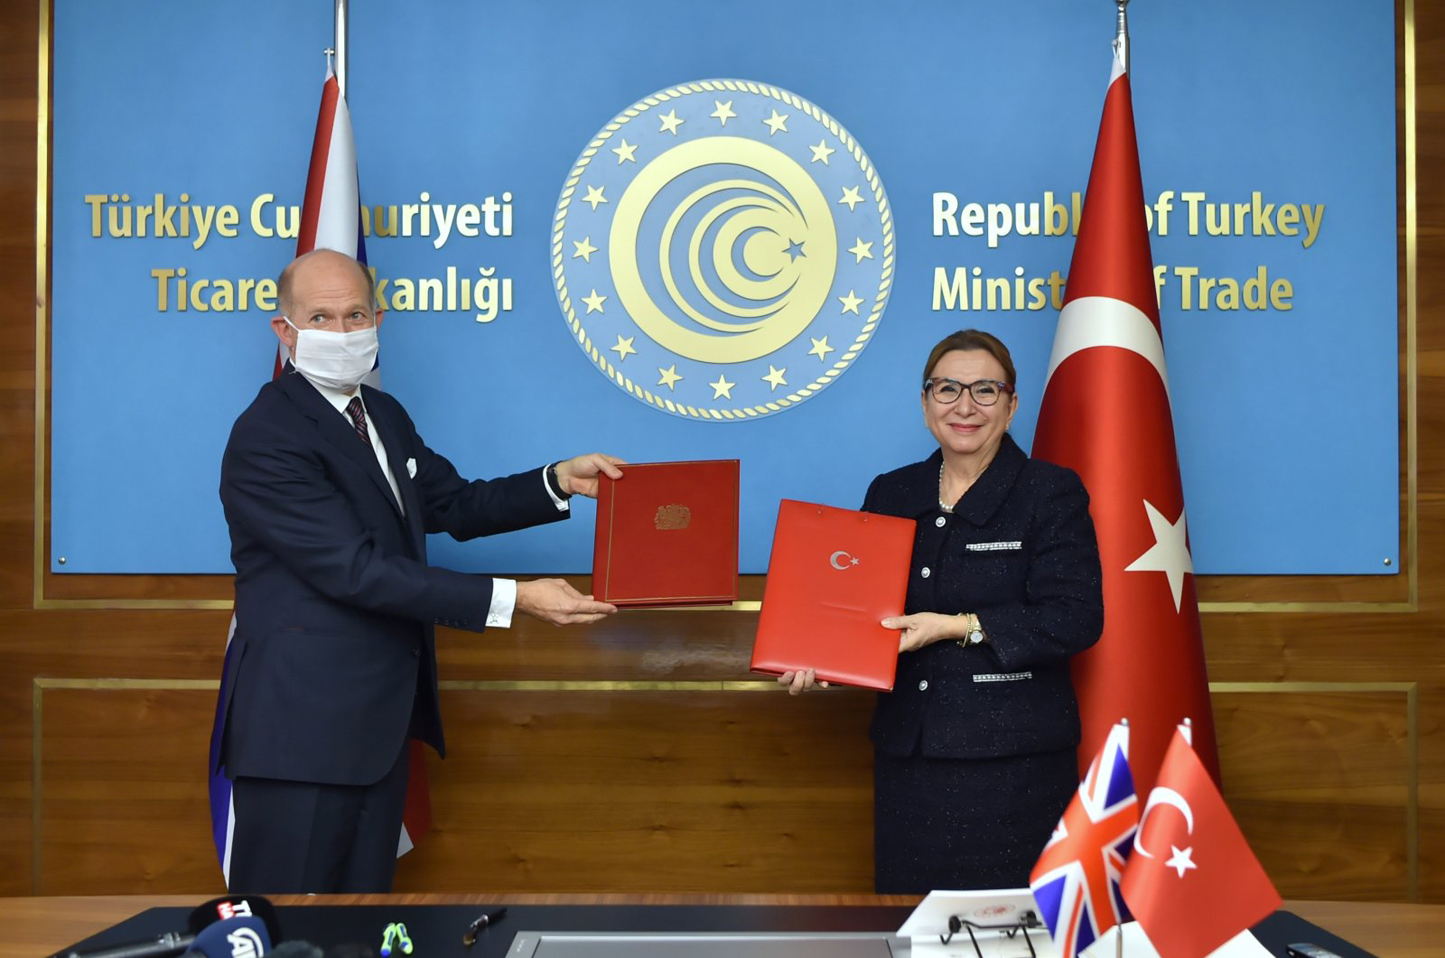 UK and Turkey sign Free Trade Agreement